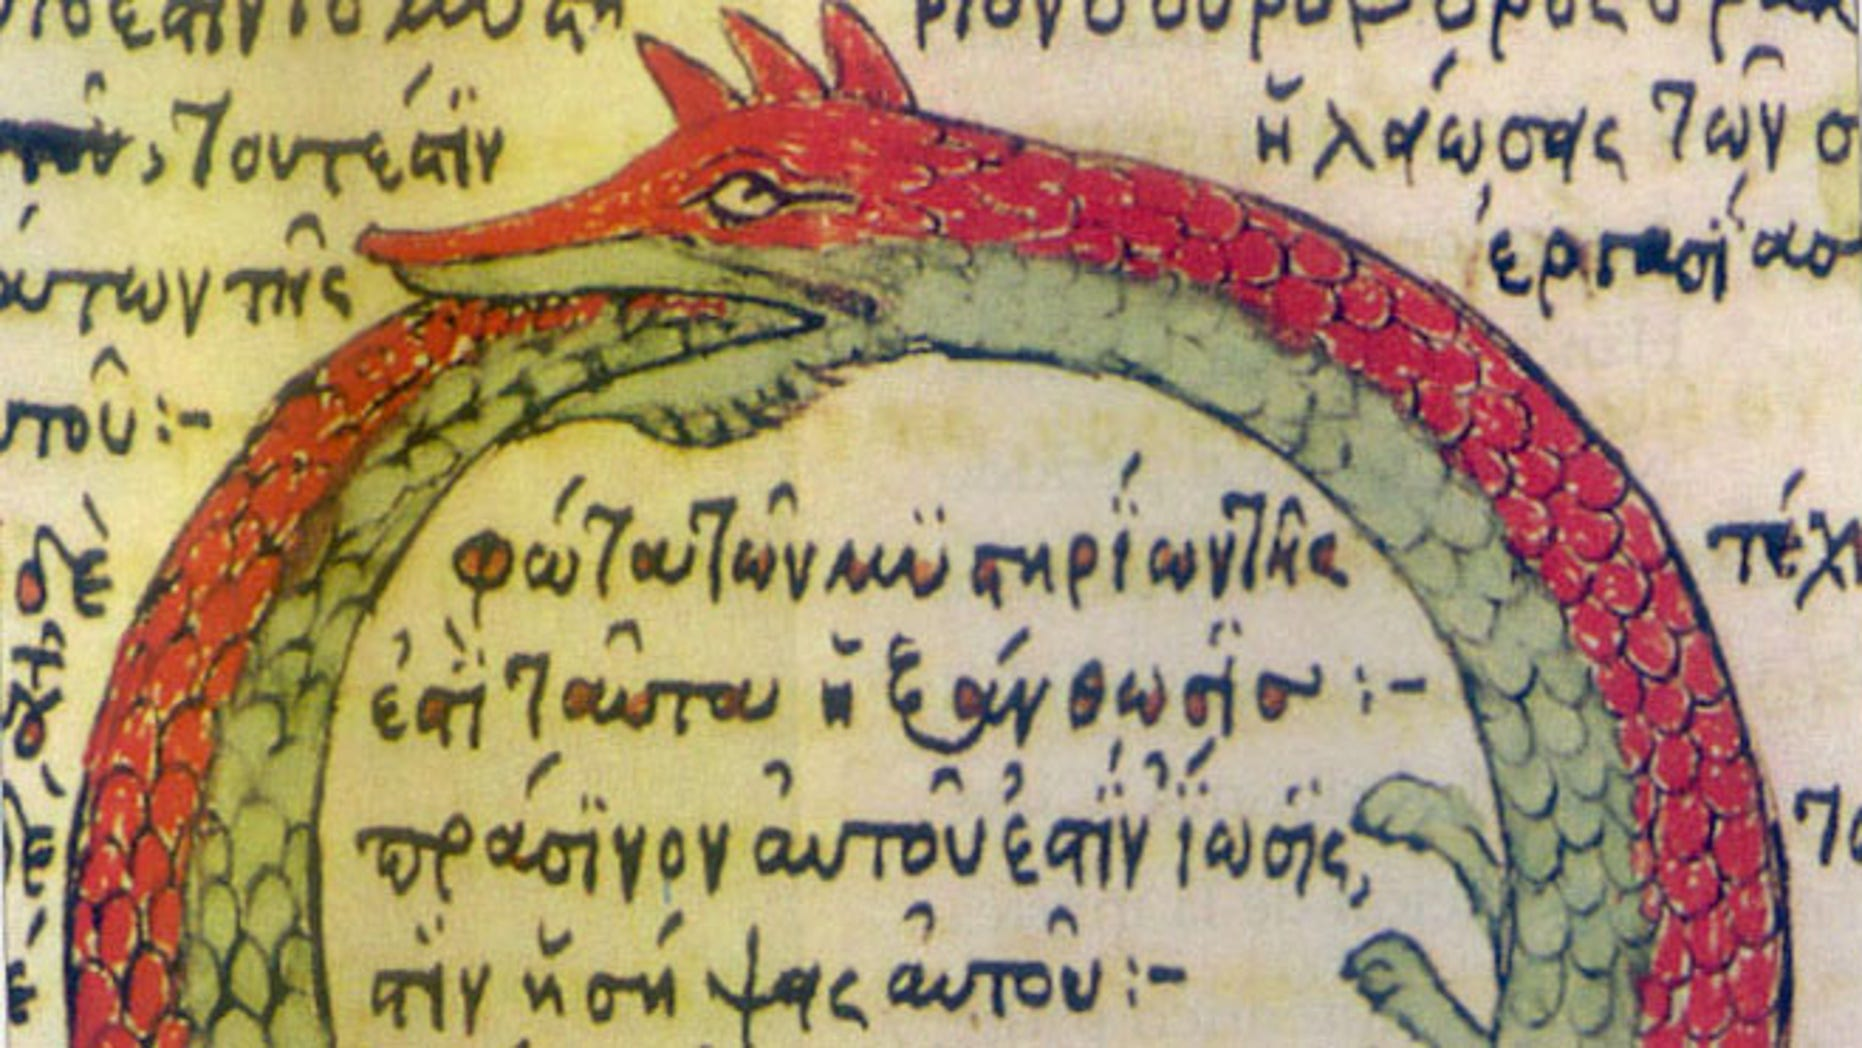 The Ouroboros of classical antiquity was a serpent locked in a perpetual cycle devouring its own tail. Taking a page out of the old wyrm's book, the Uroburos malware seeks to engulf whole networks, possibly as part of a Russian espionage plot against the United States.